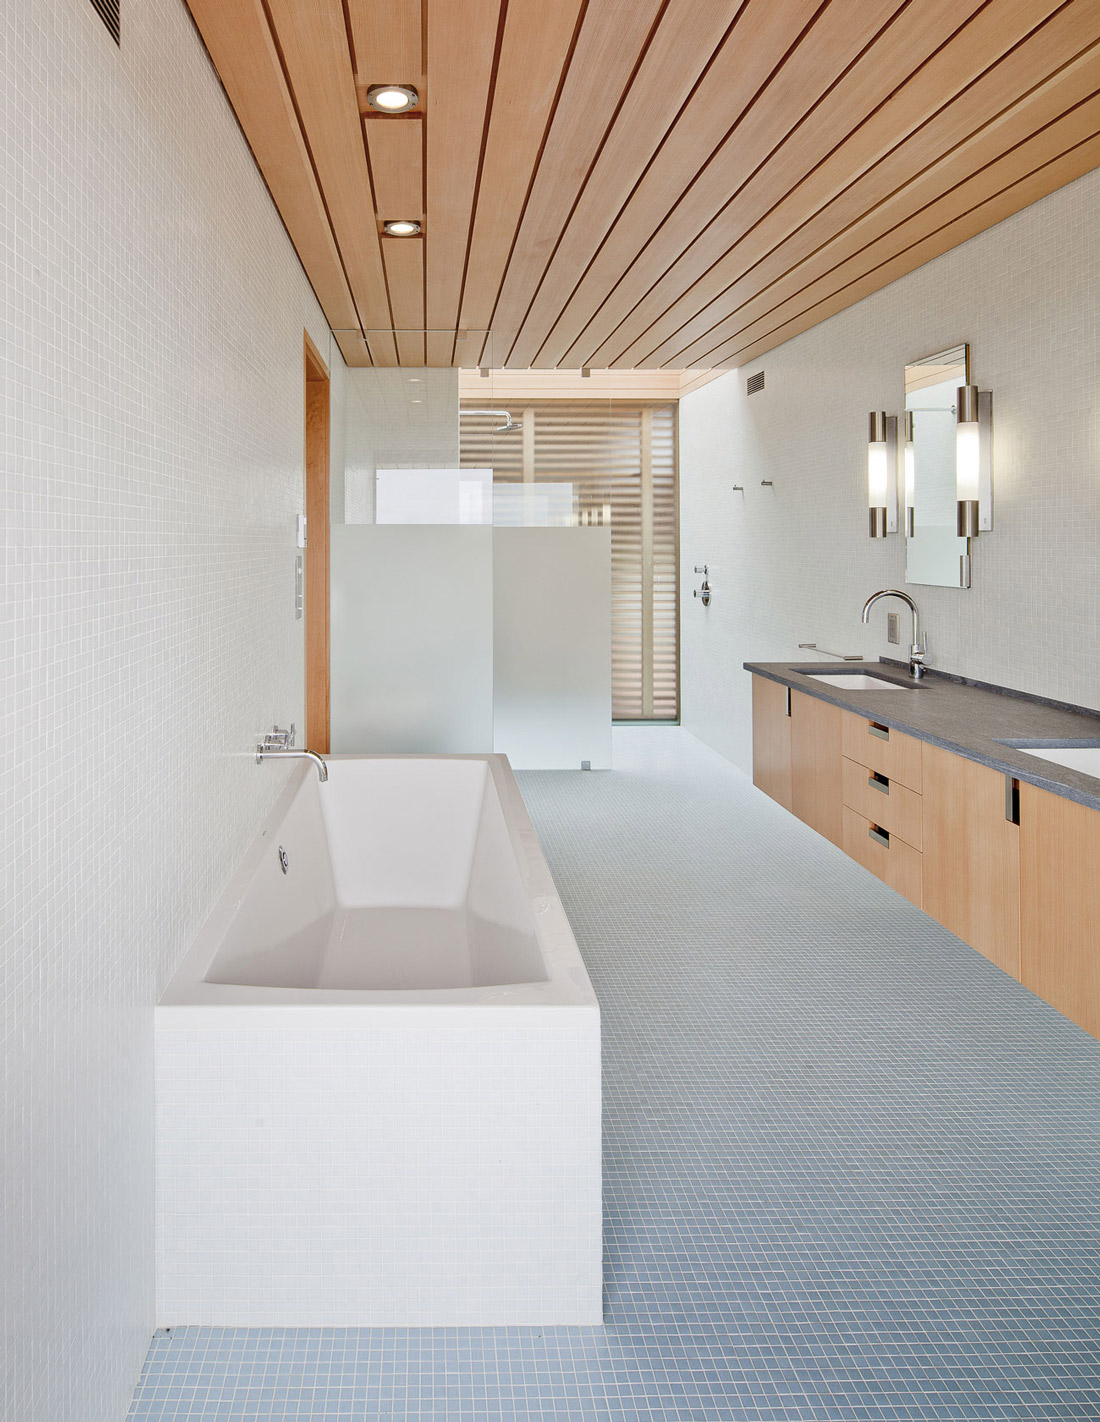 Bathroom, Bath, Home in Edgartown, Massachusetts